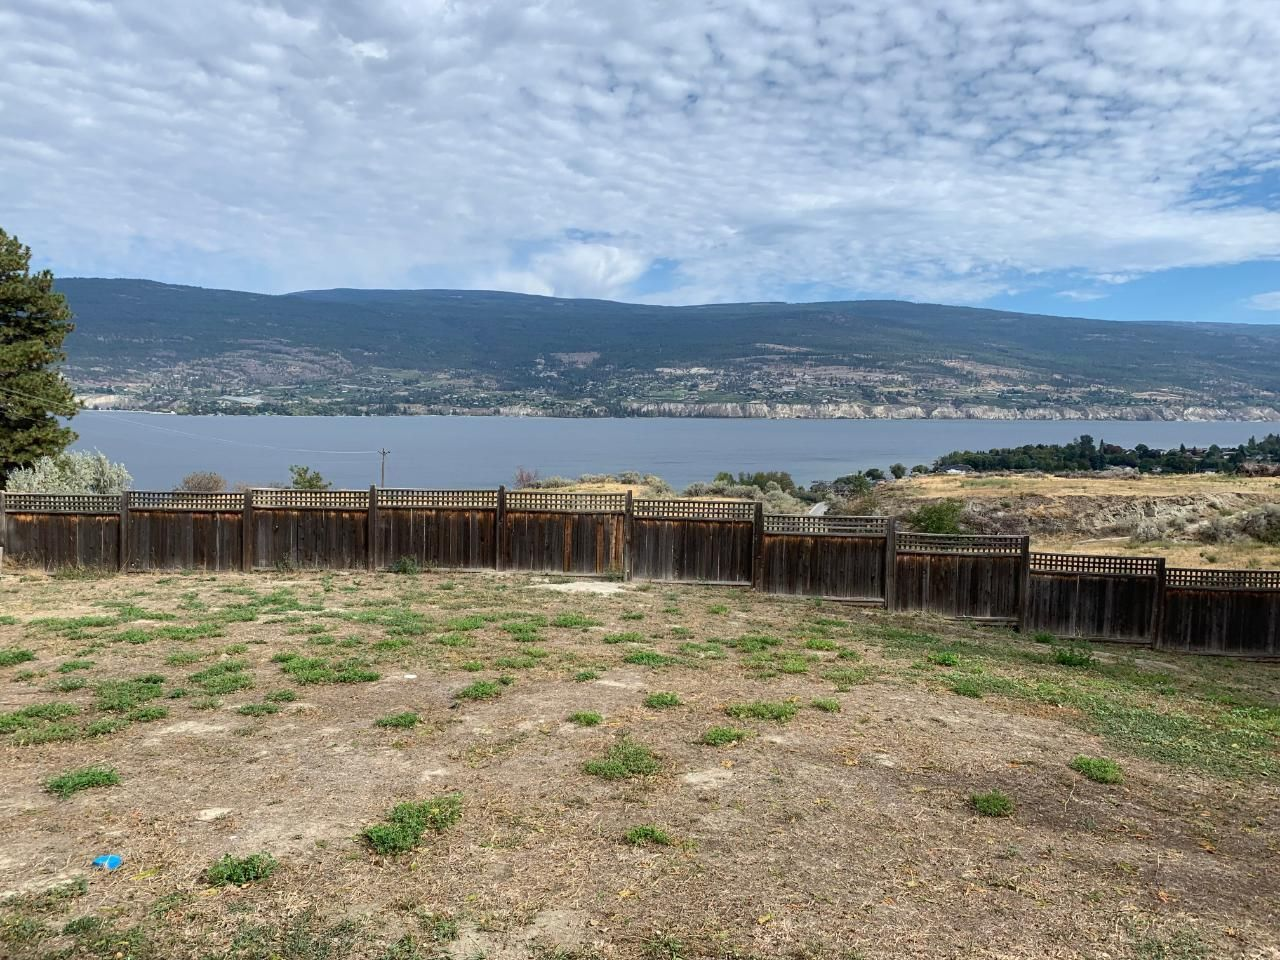 Main Photo: 8611 FRONT BENCH Road, in Summerland: House for sale : MLS®# 191490